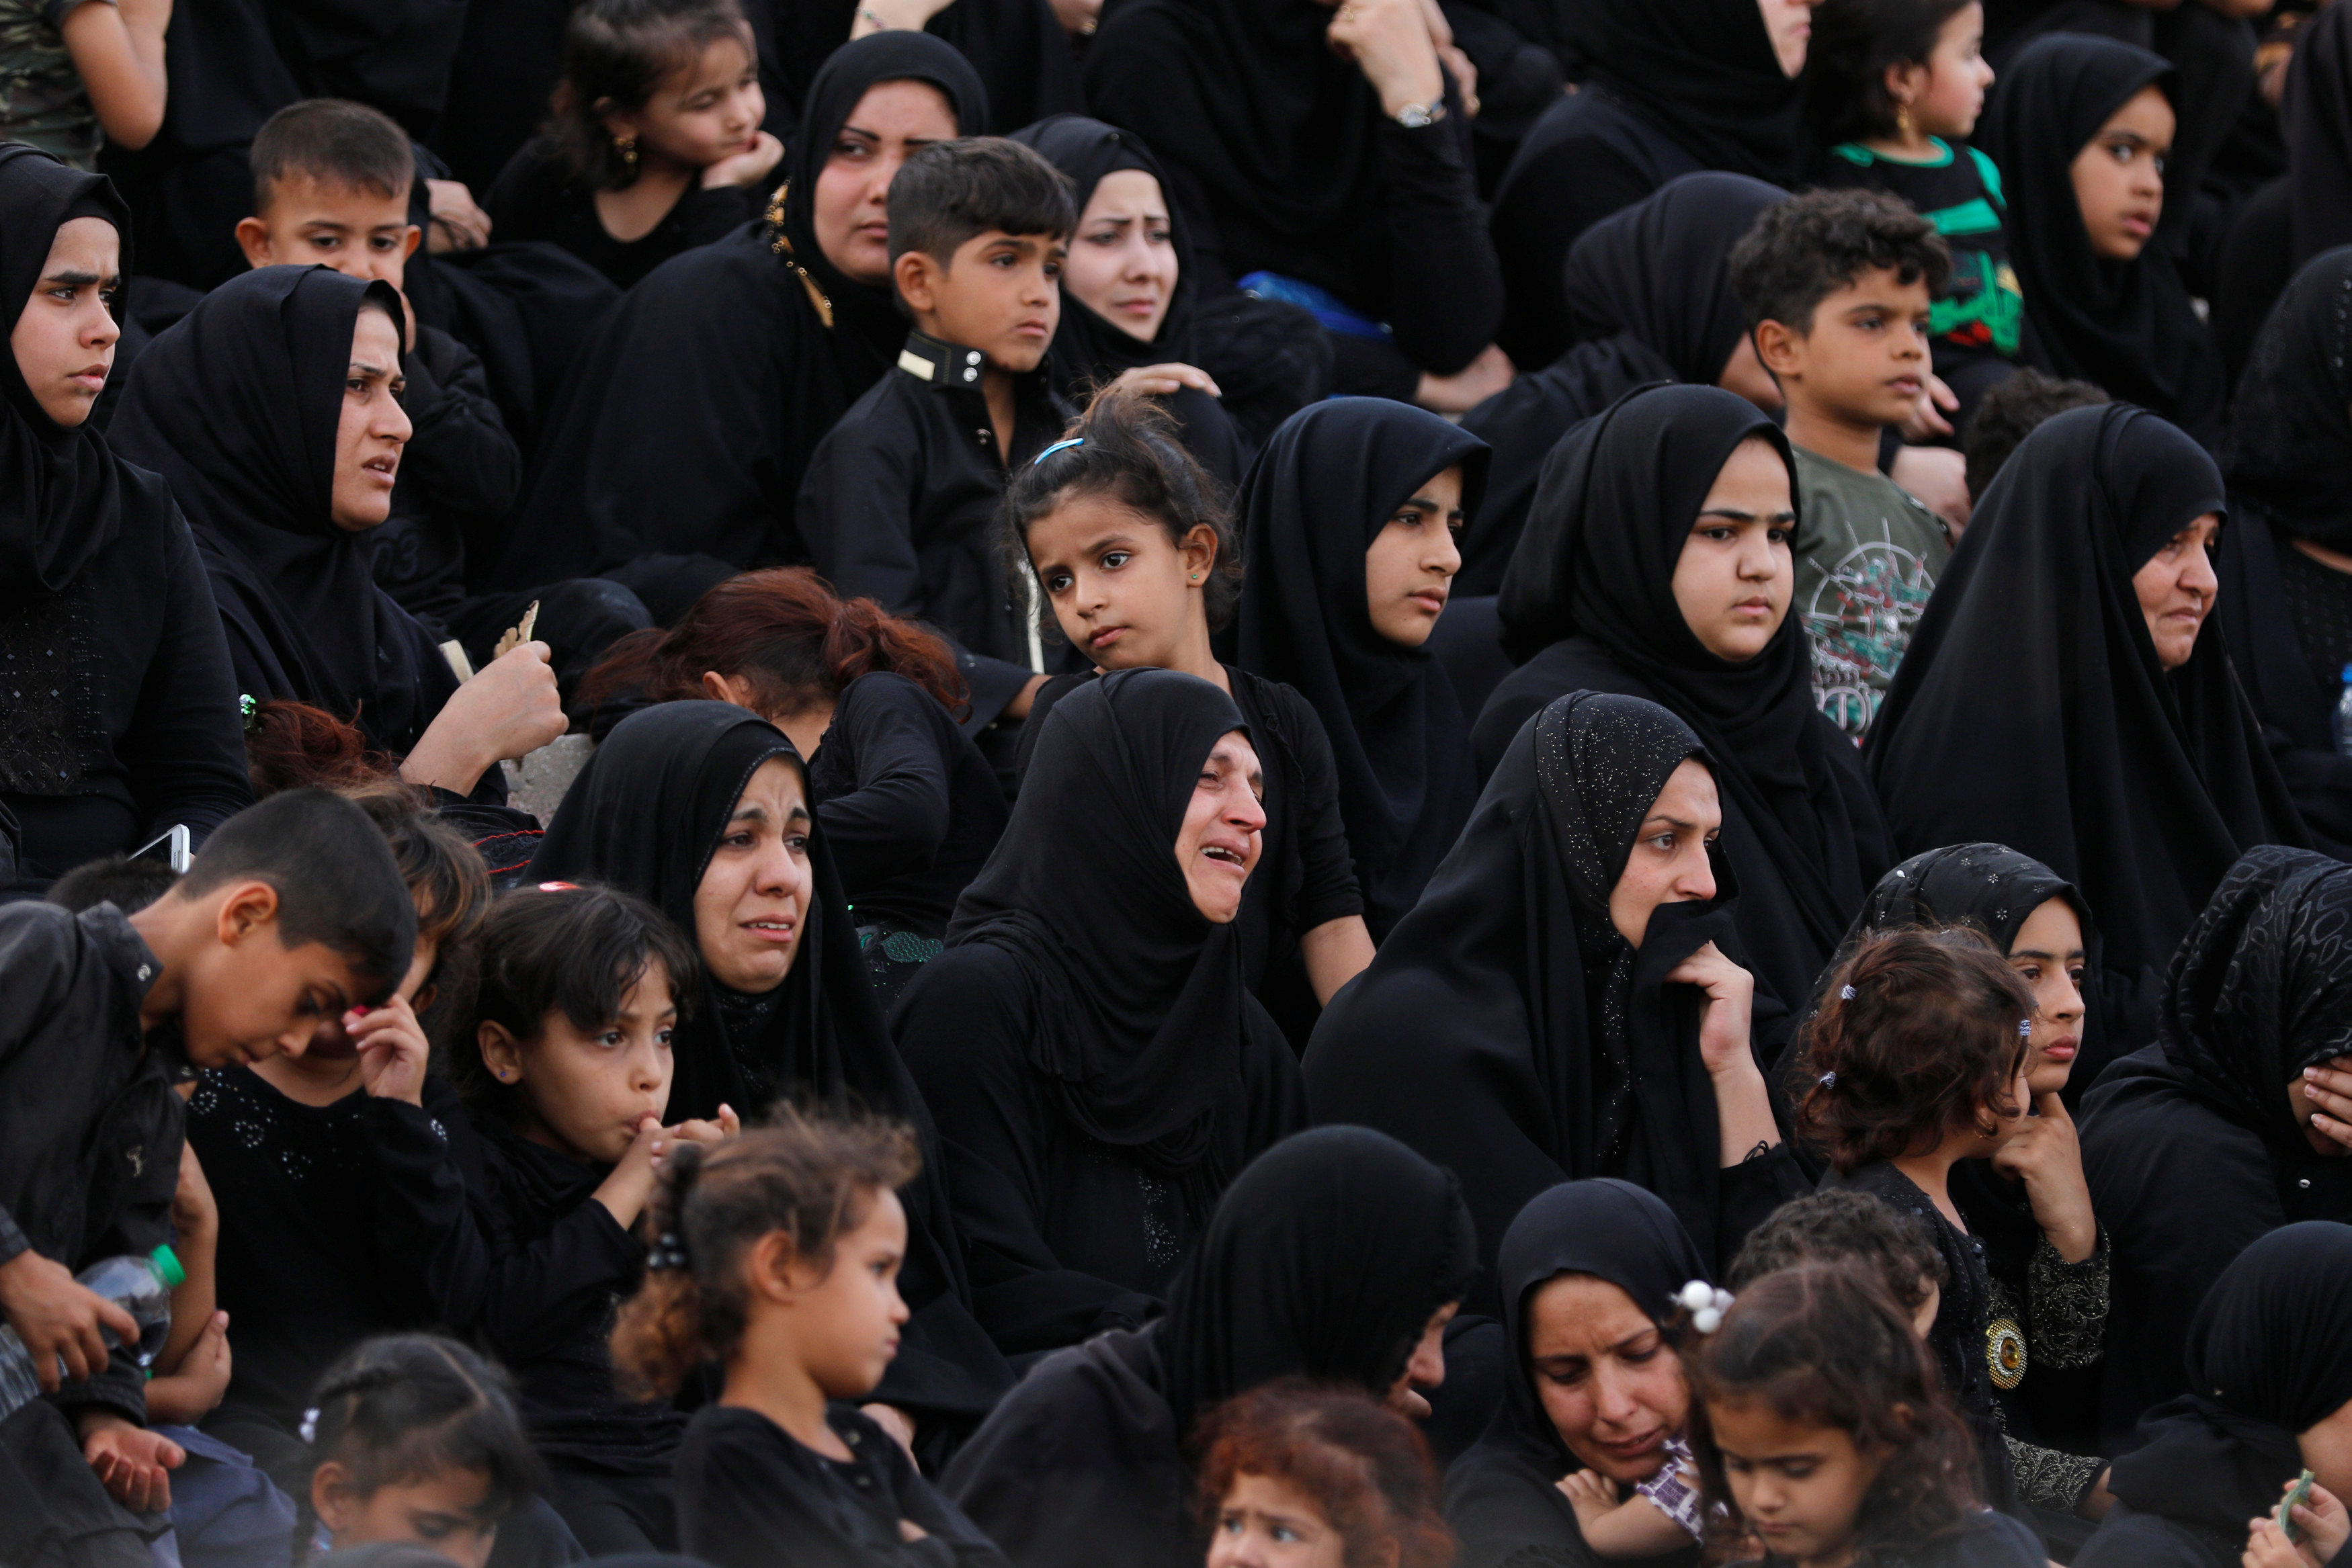 Shi'ite women cry as they watch a re-enactment of the 7th century battle of Kerbala during commemoration in Sadr City, Baghdad